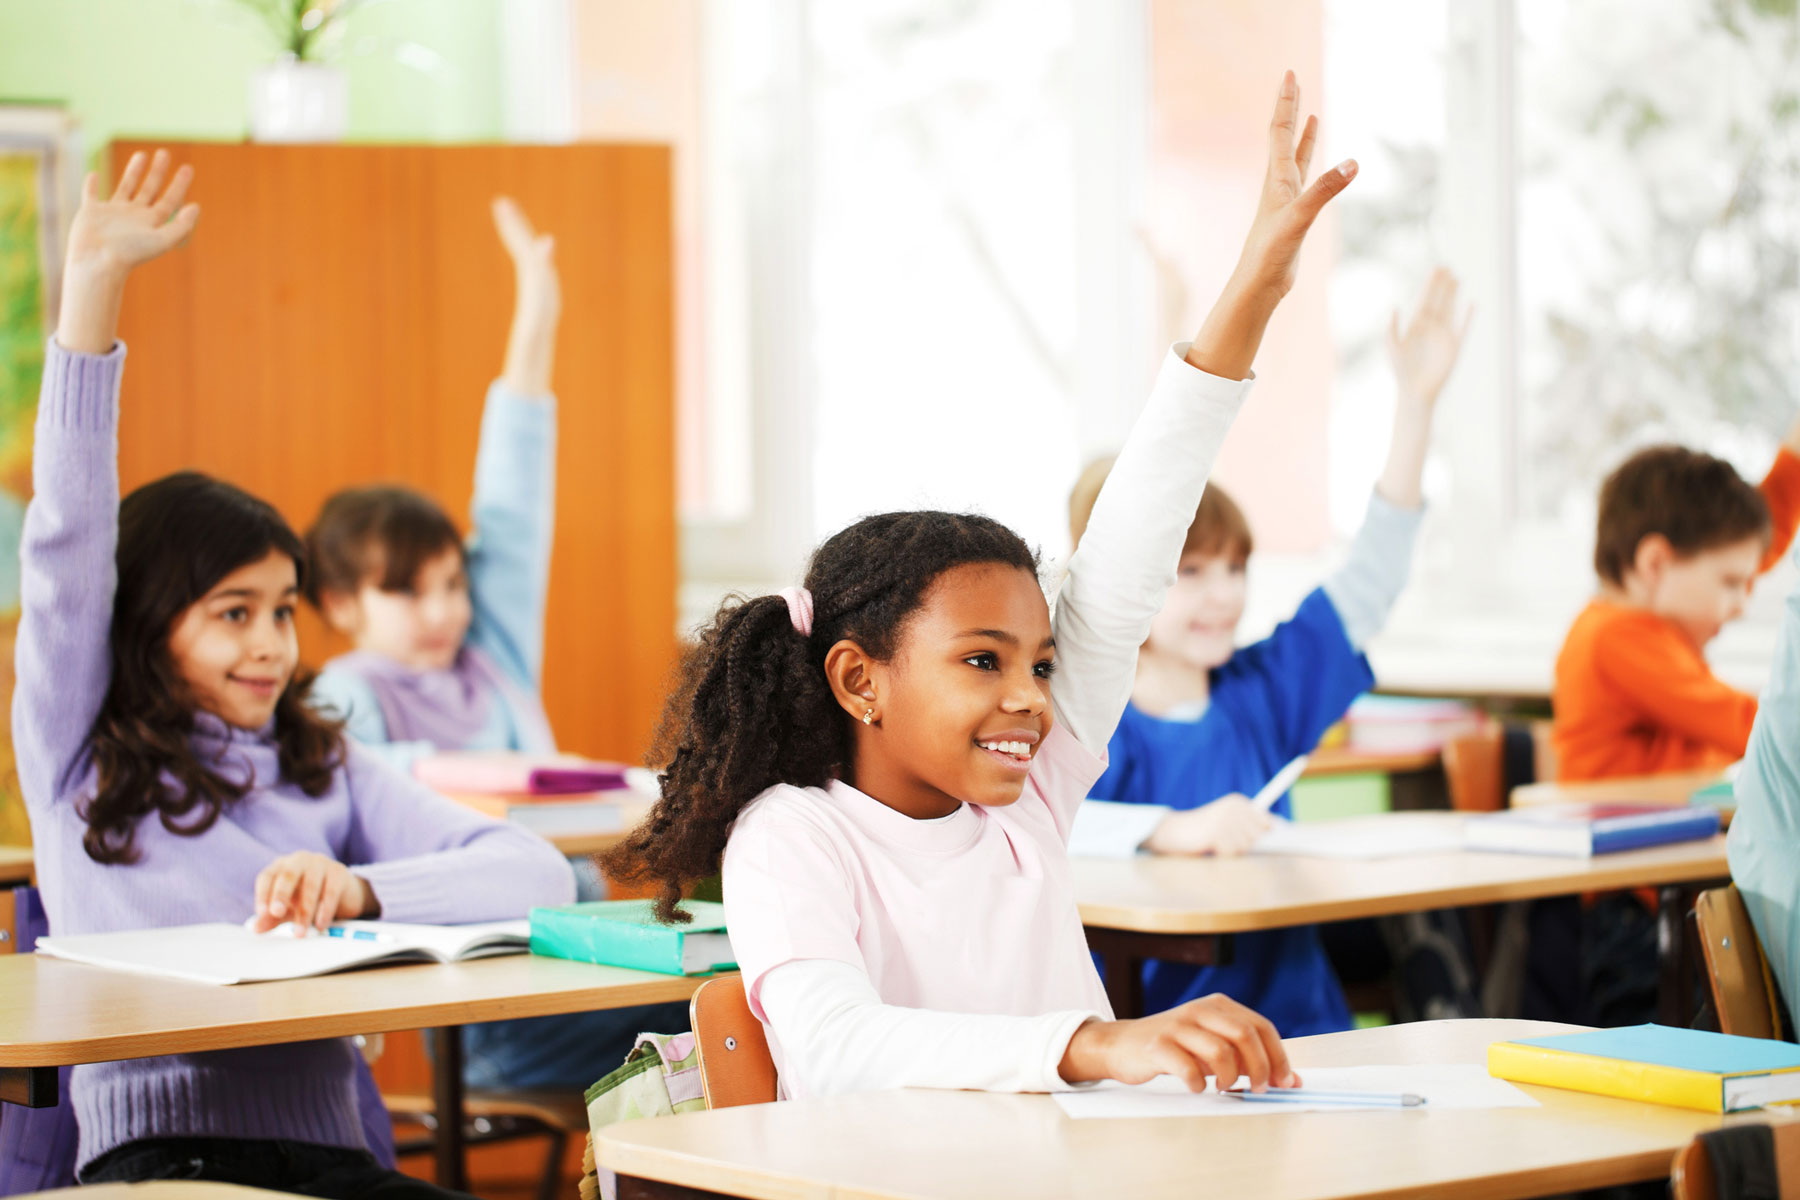 diverse young students in classroom with hands raised to answer question